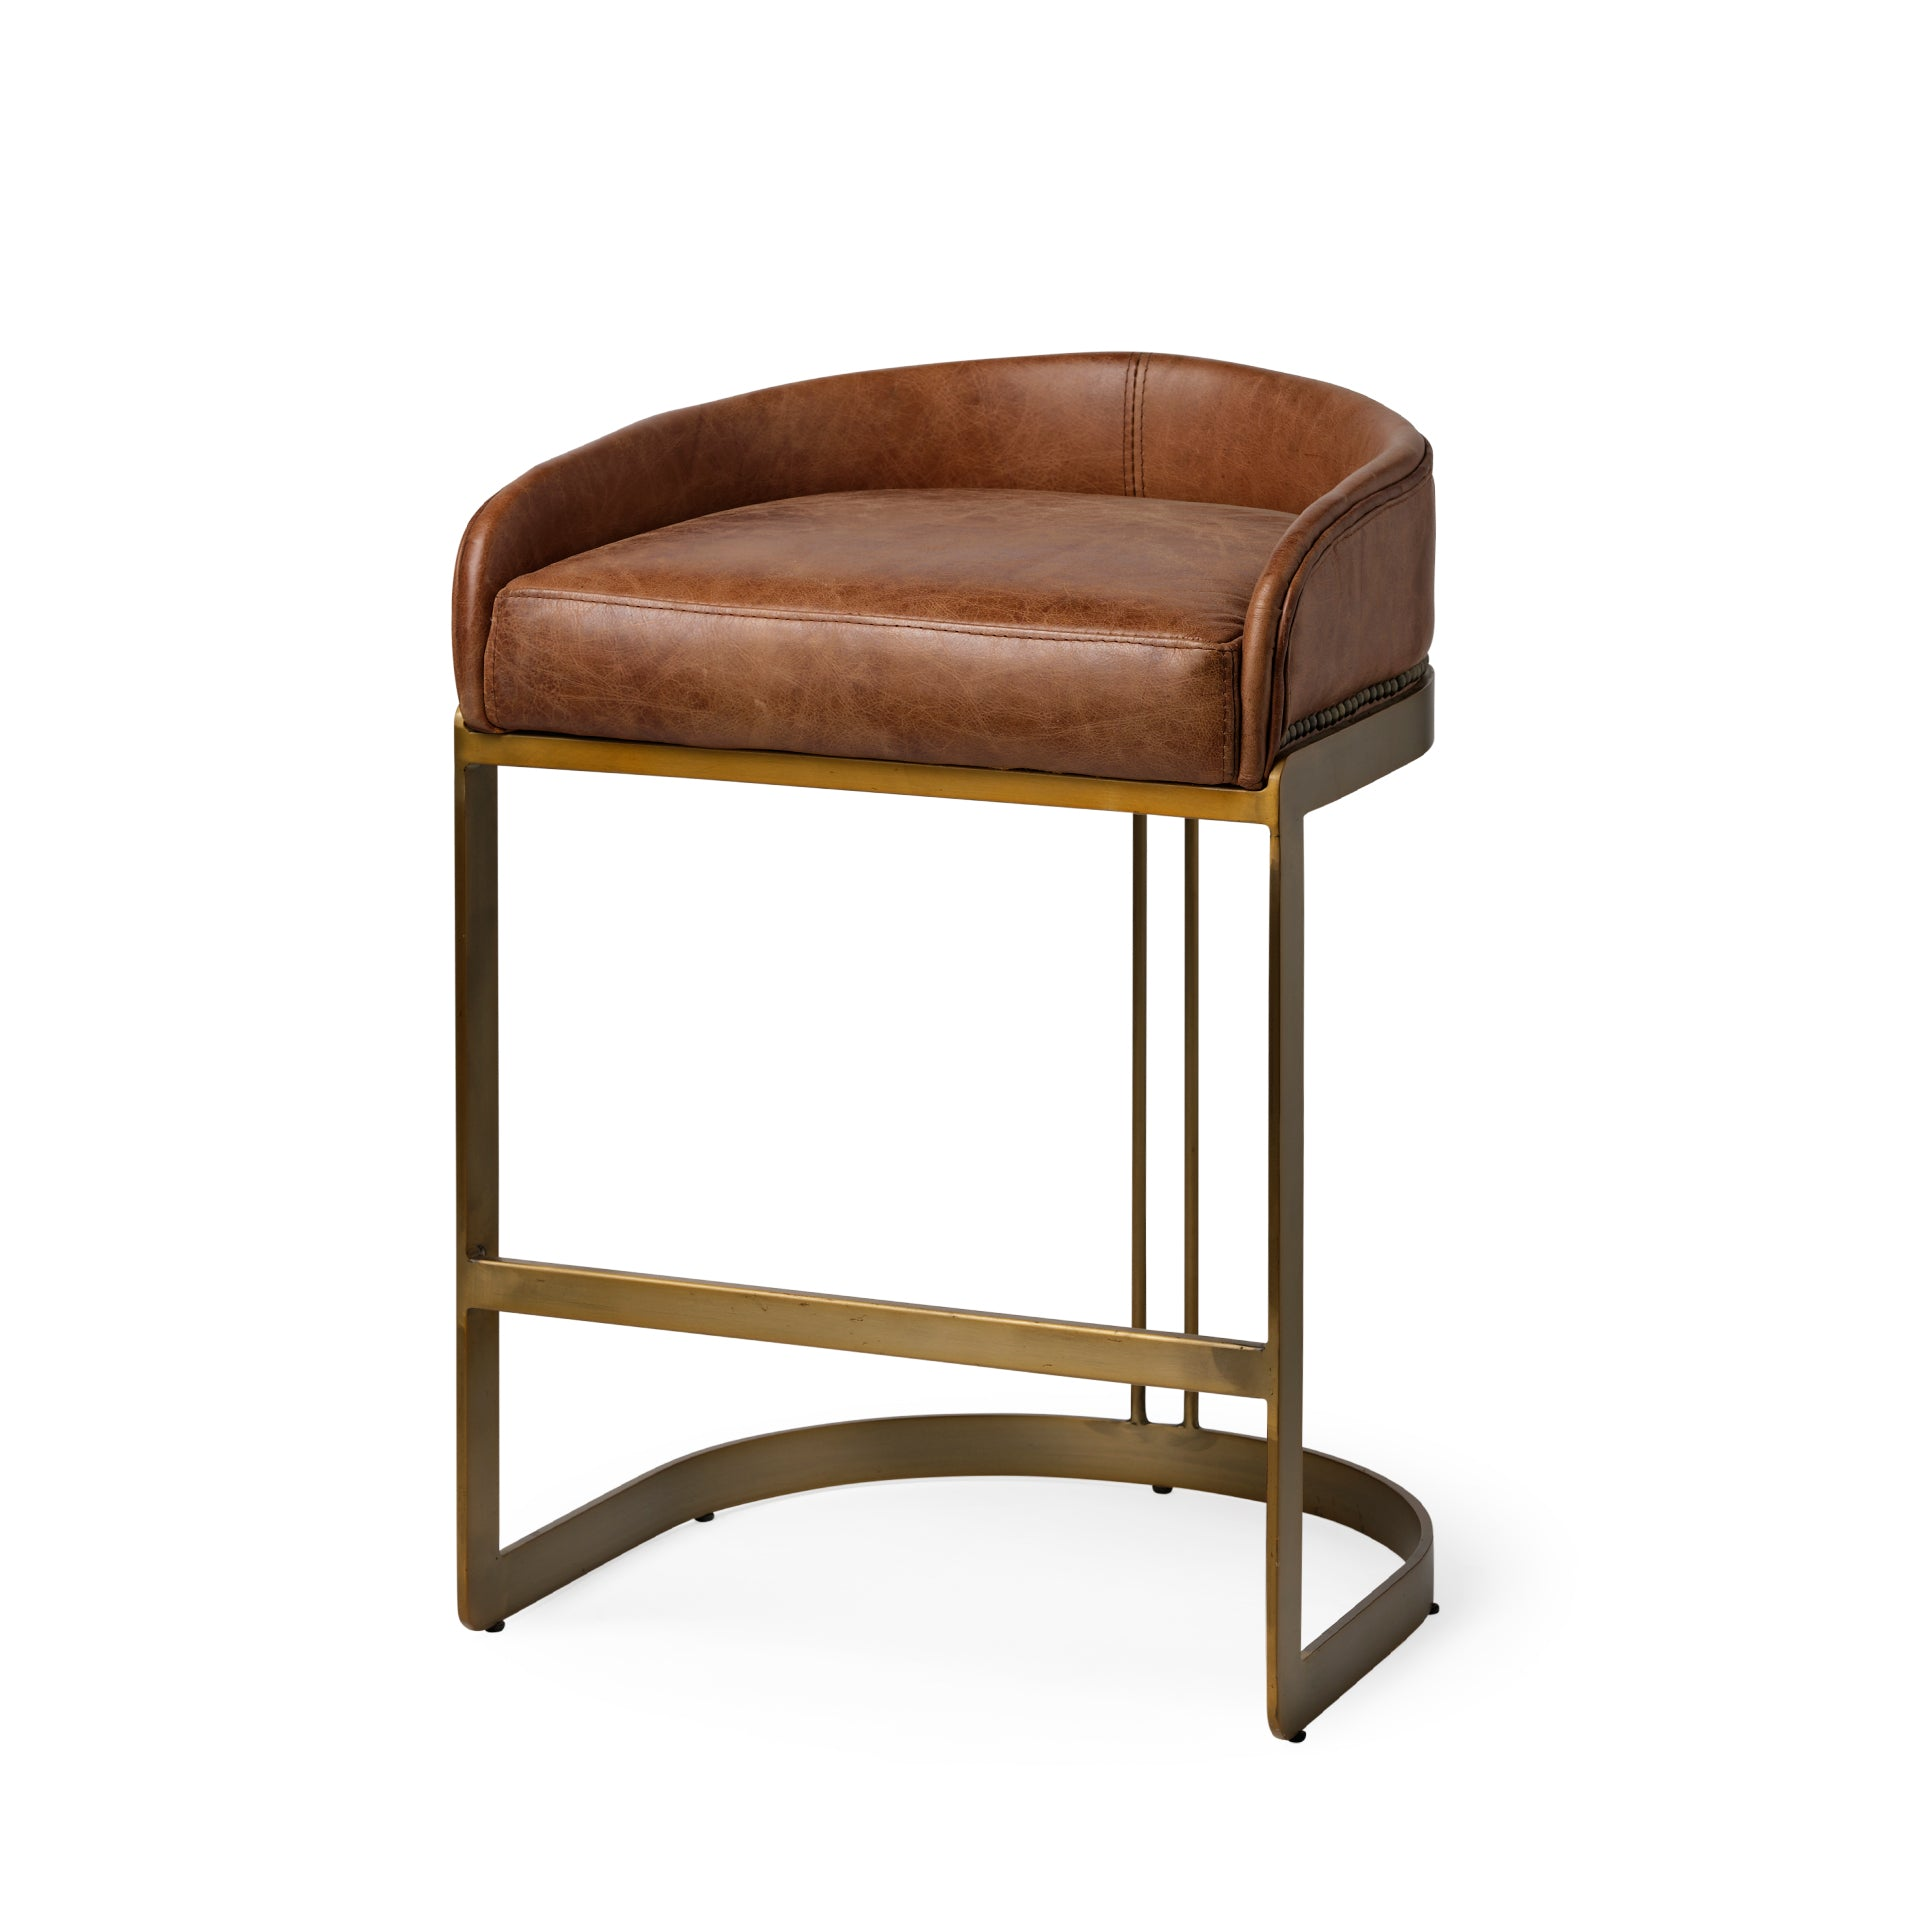 Carwen Club-Style Counter Stool - Brown Leather